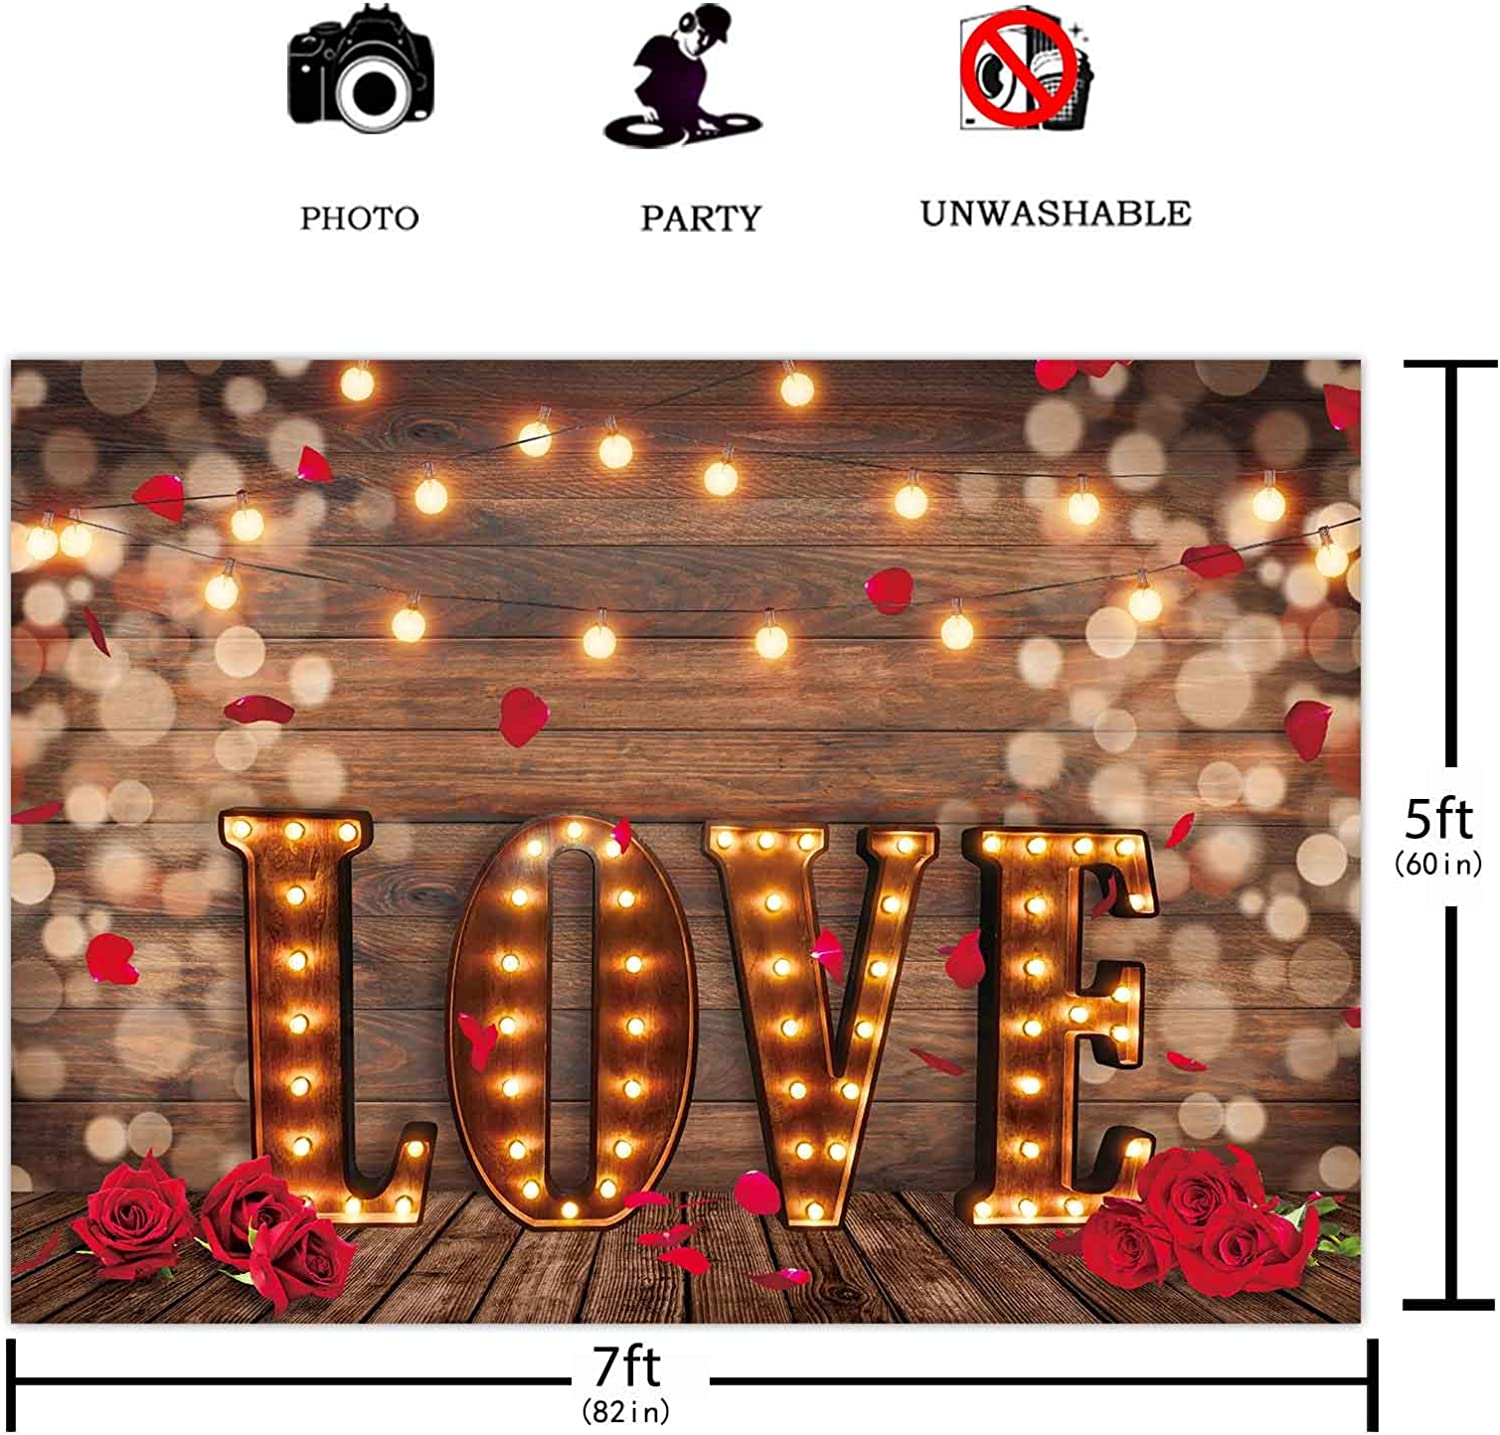 Levoo Flannel Marble Pattern Background Banner Photography Studio Birthday Family Party Holiday Celebration Romantic Wedding Photography Backdrop Home Decoration 7x5ft,chy621